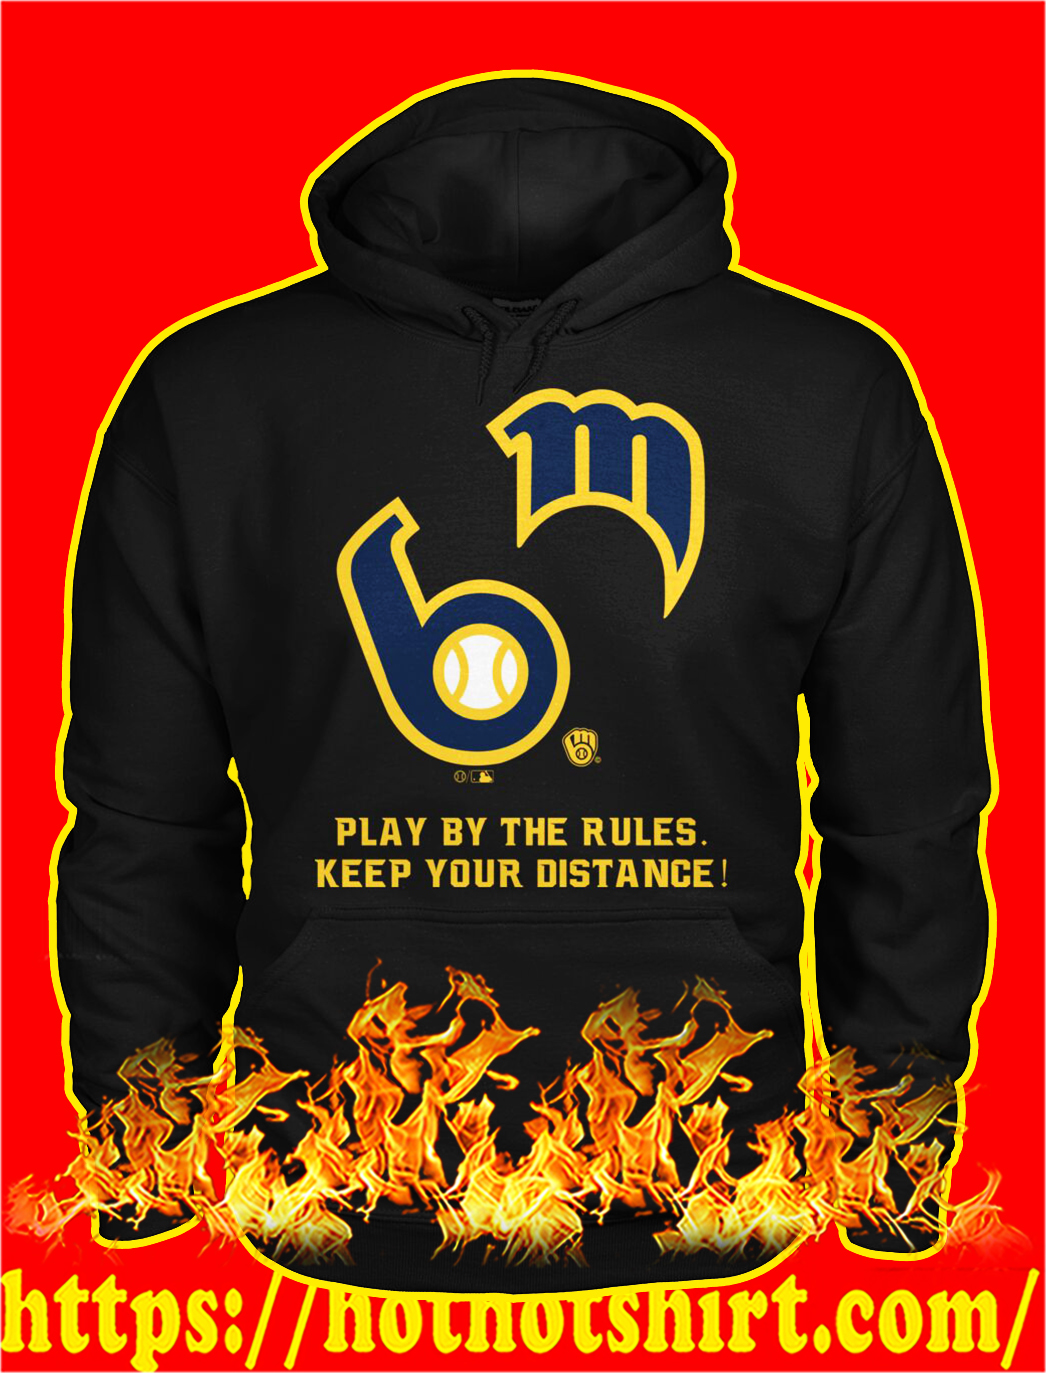 MLB play by the rules keep your distance hoodie